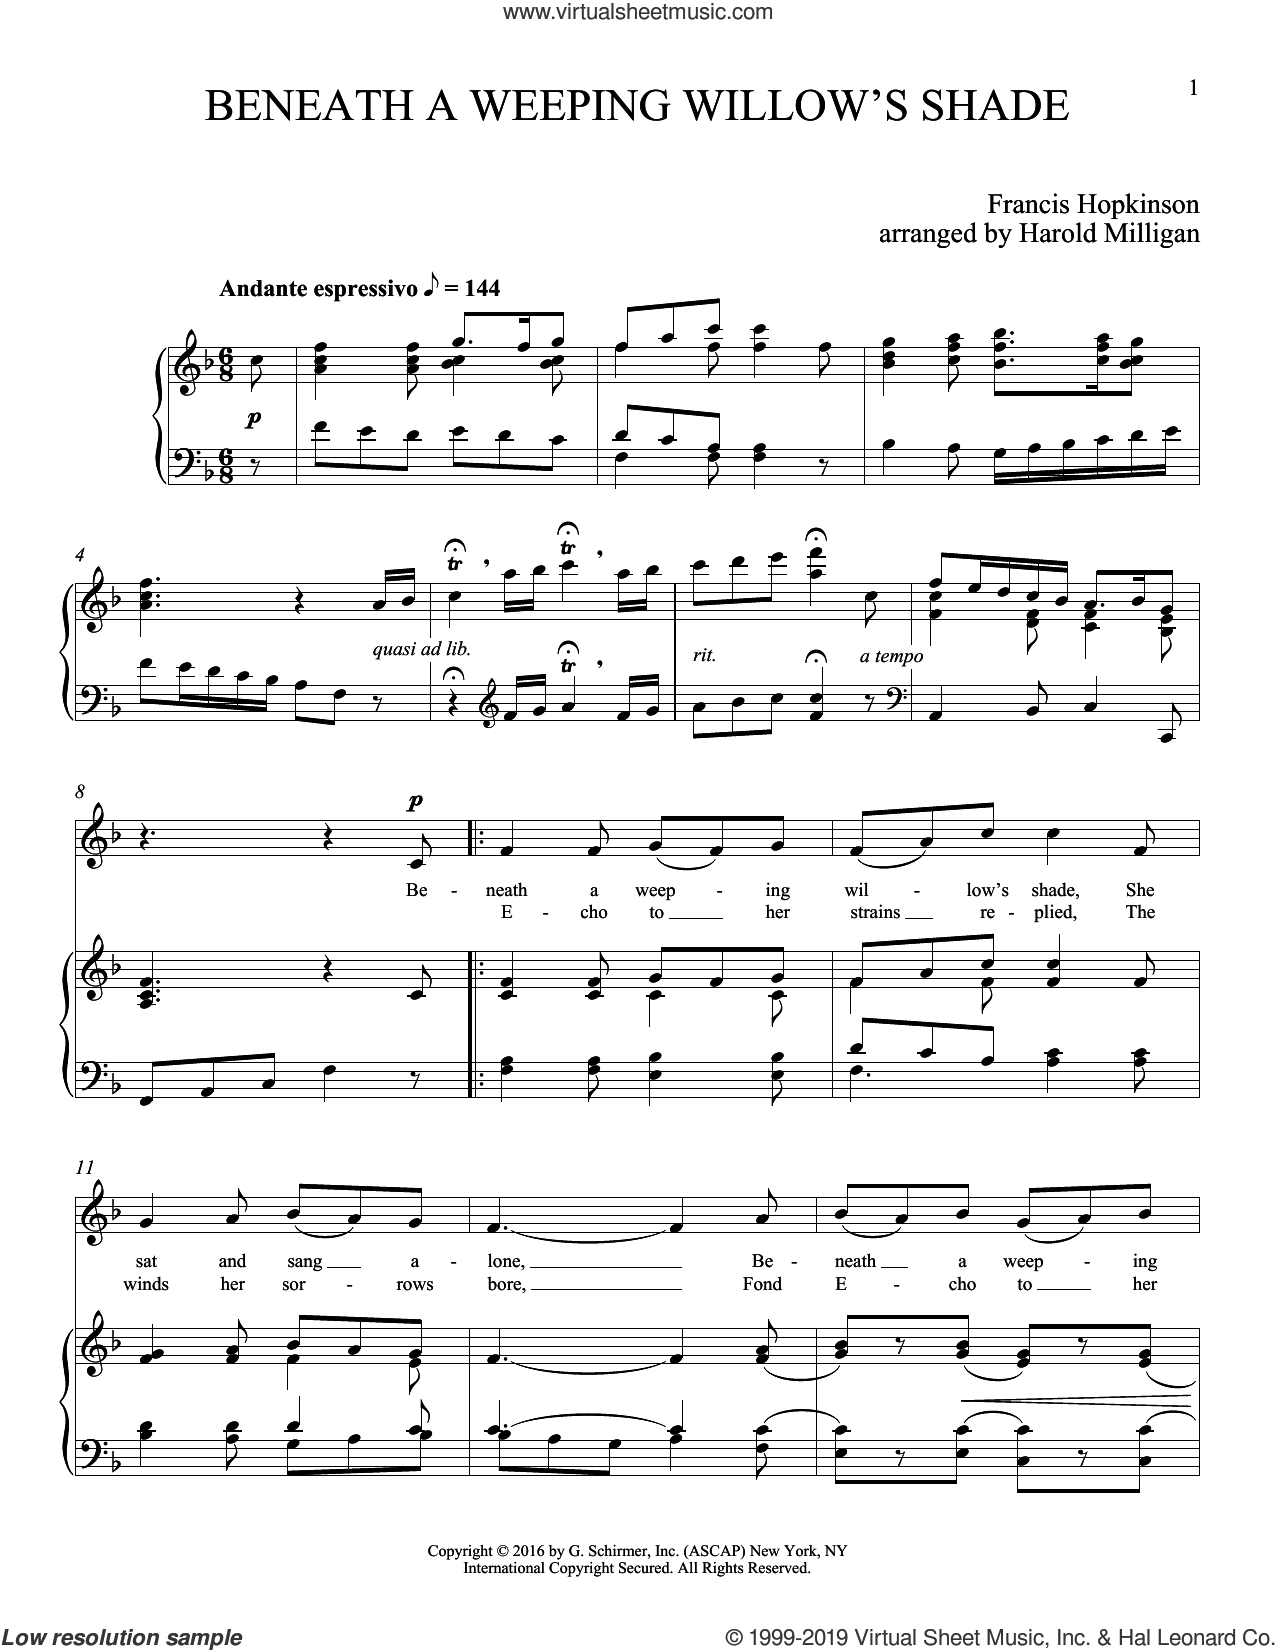 Beneath A Weeping Willow's Shade sheet music for voice and piano (Soprano) by Francis Hopkinson and Joan Frey Boytim, classical score, intermediate skill level